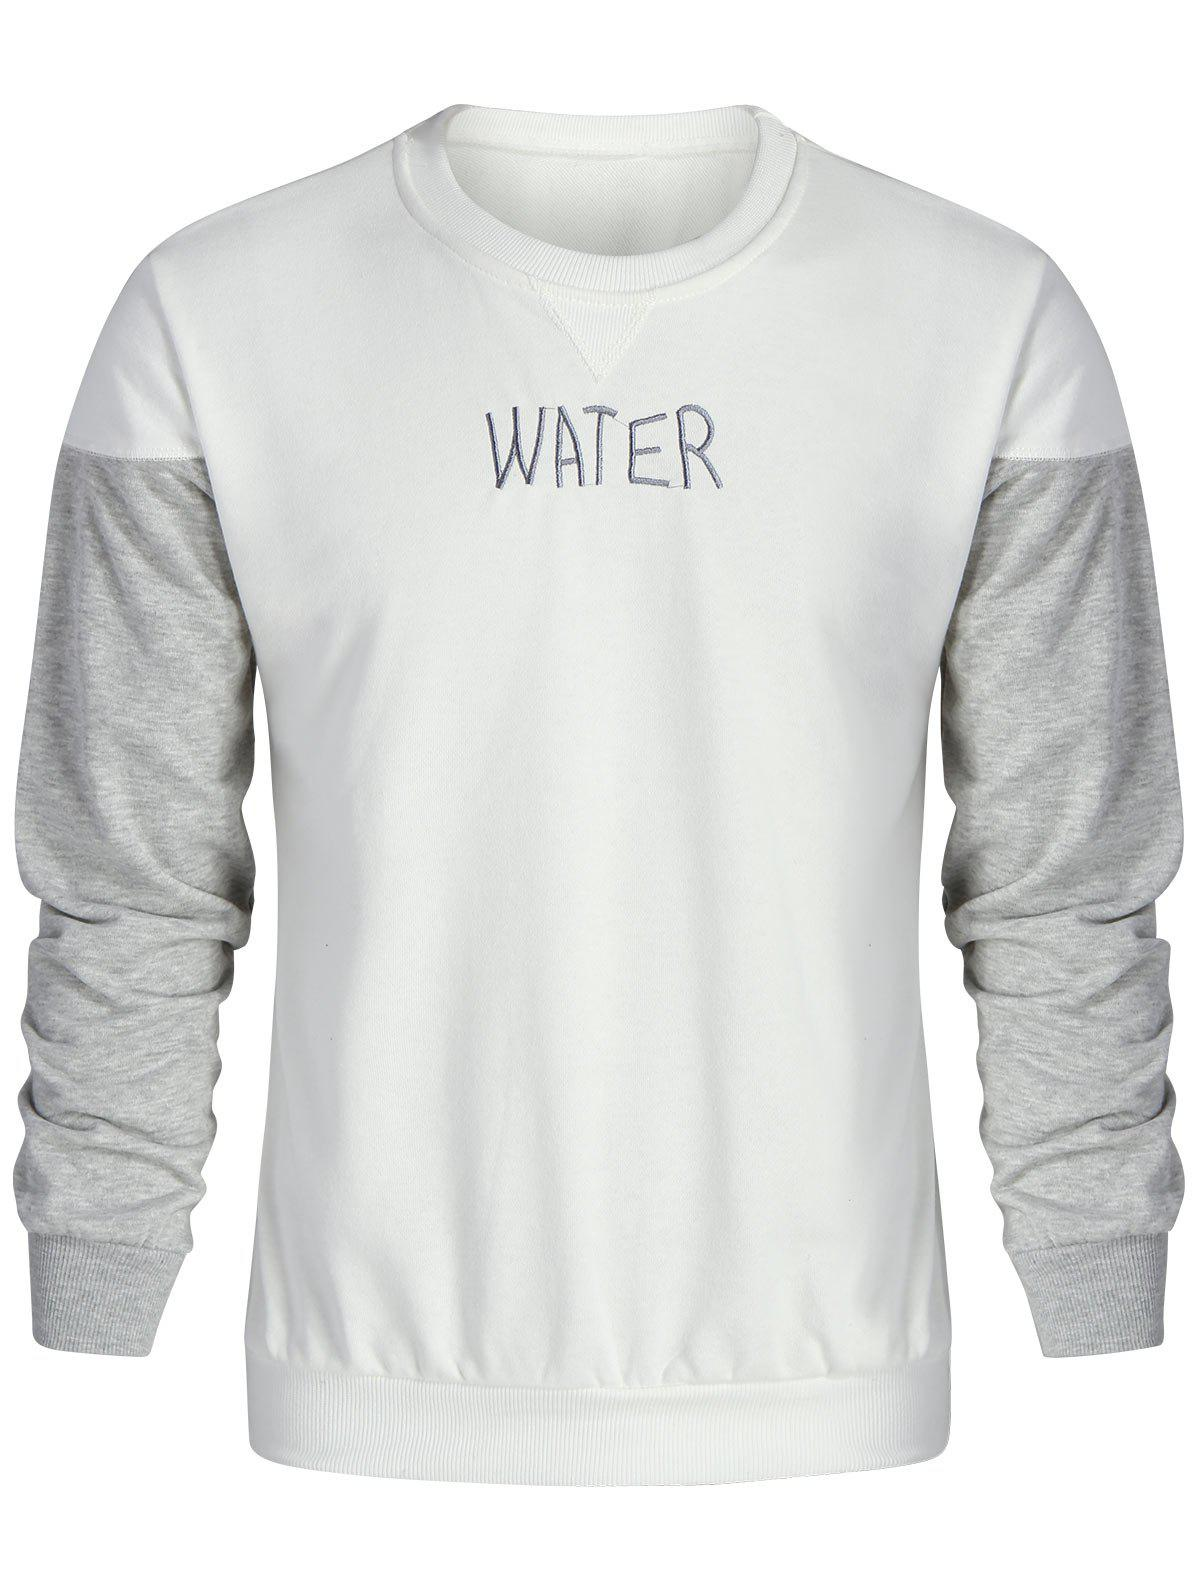 Water Embroidered Color Block Sweatshirt 229366004